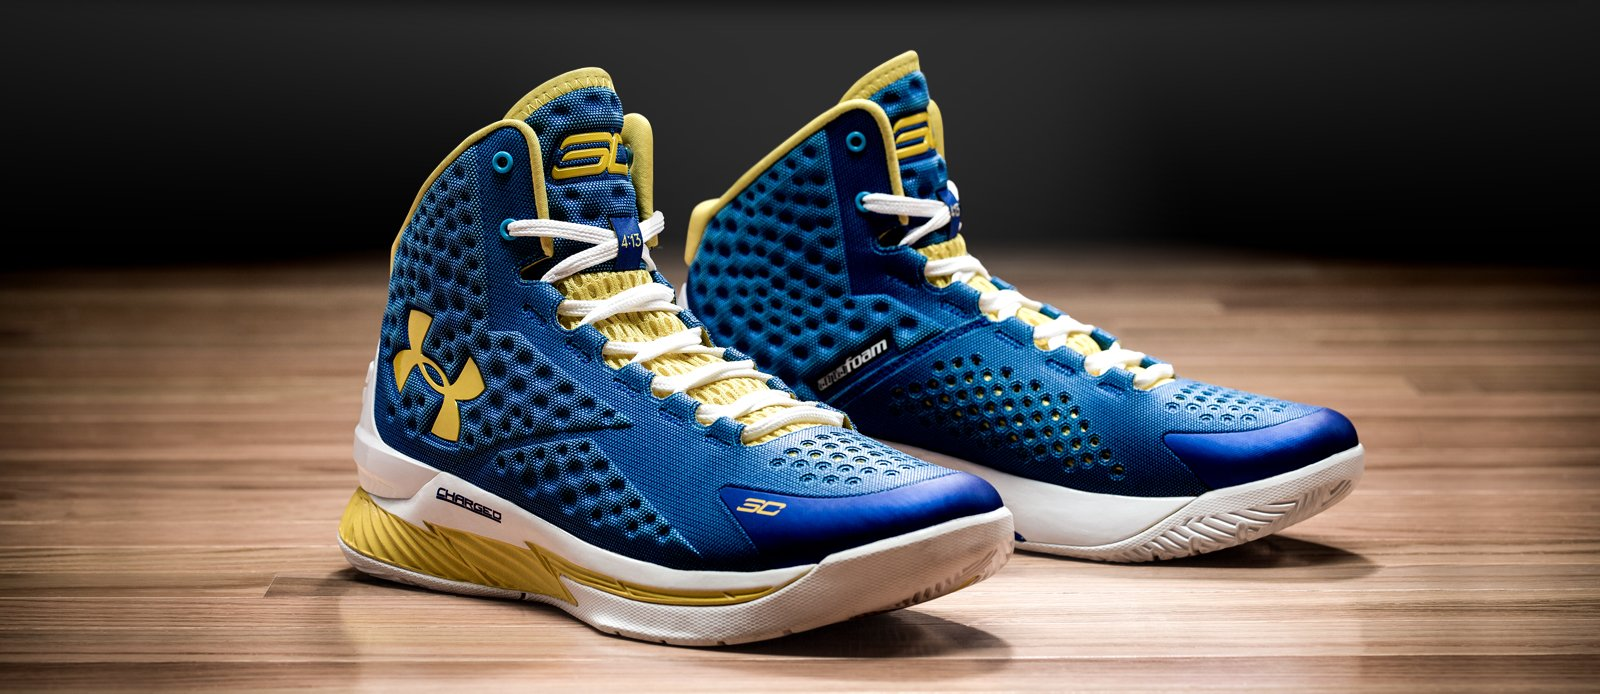 Uunder Armour Curry 1 blue